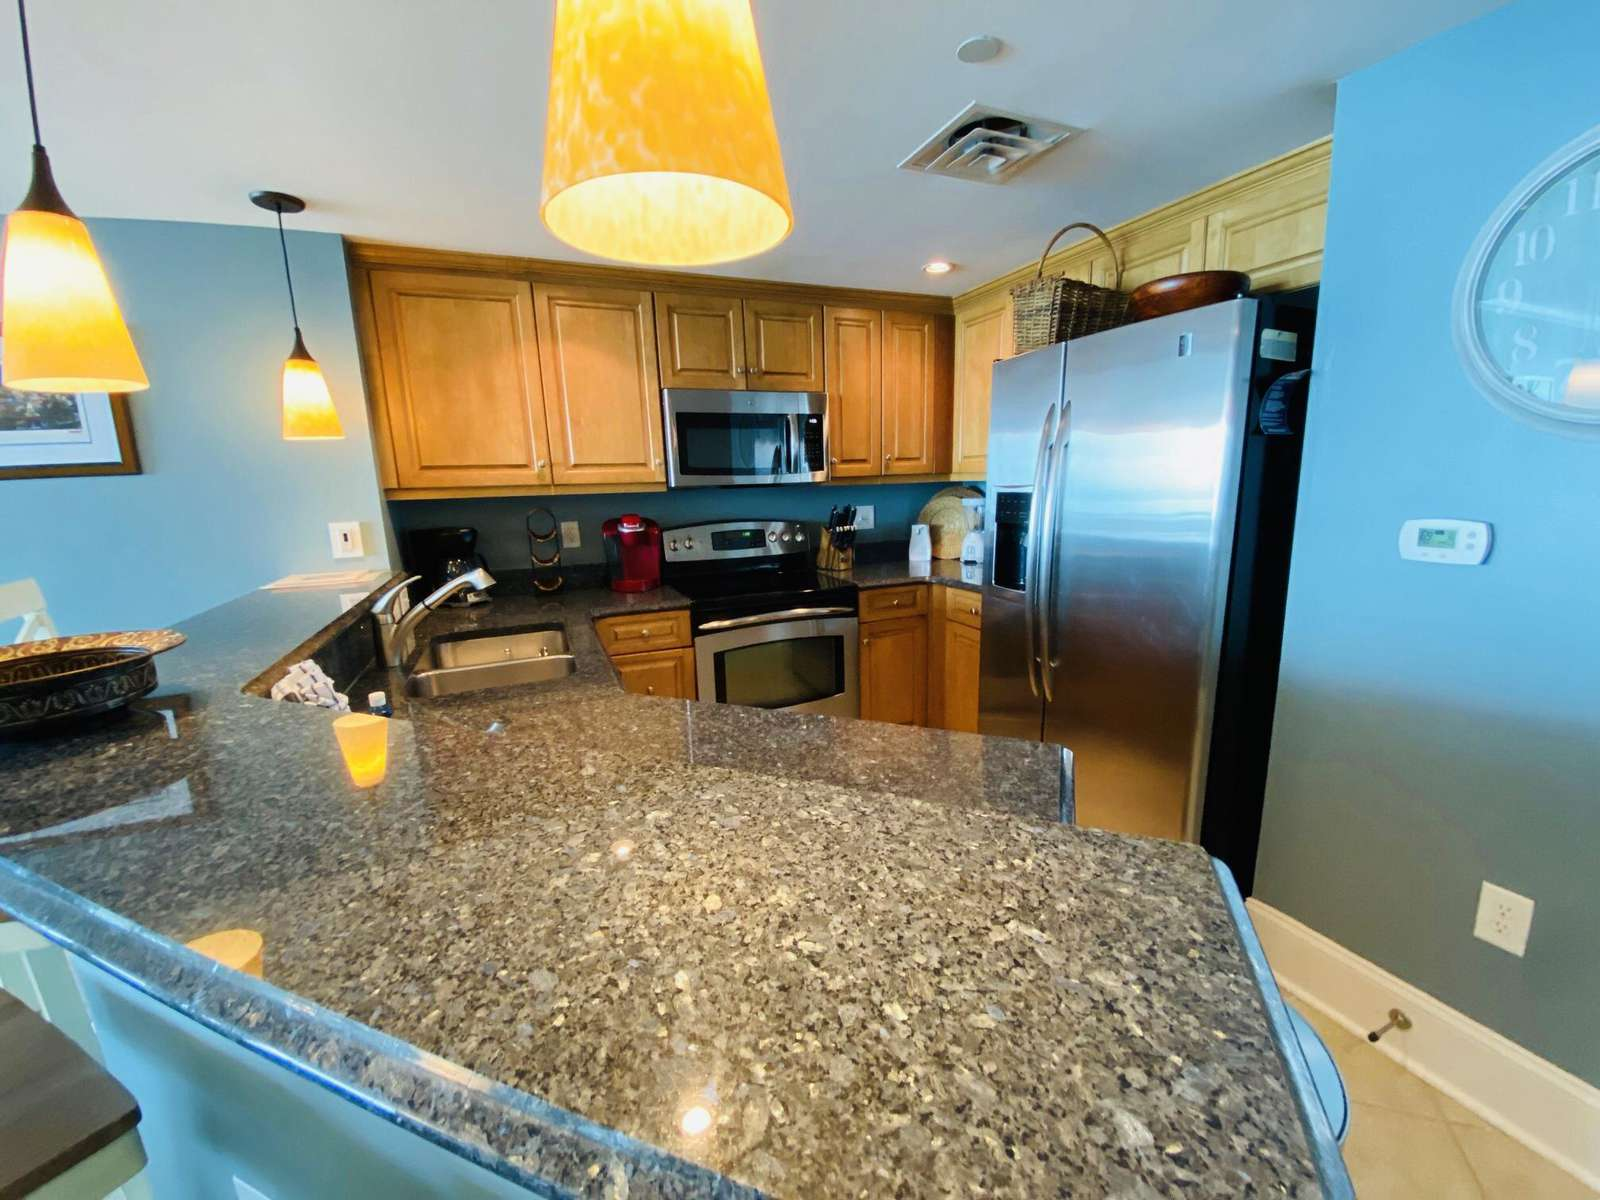 Granite tops, stainless appliances